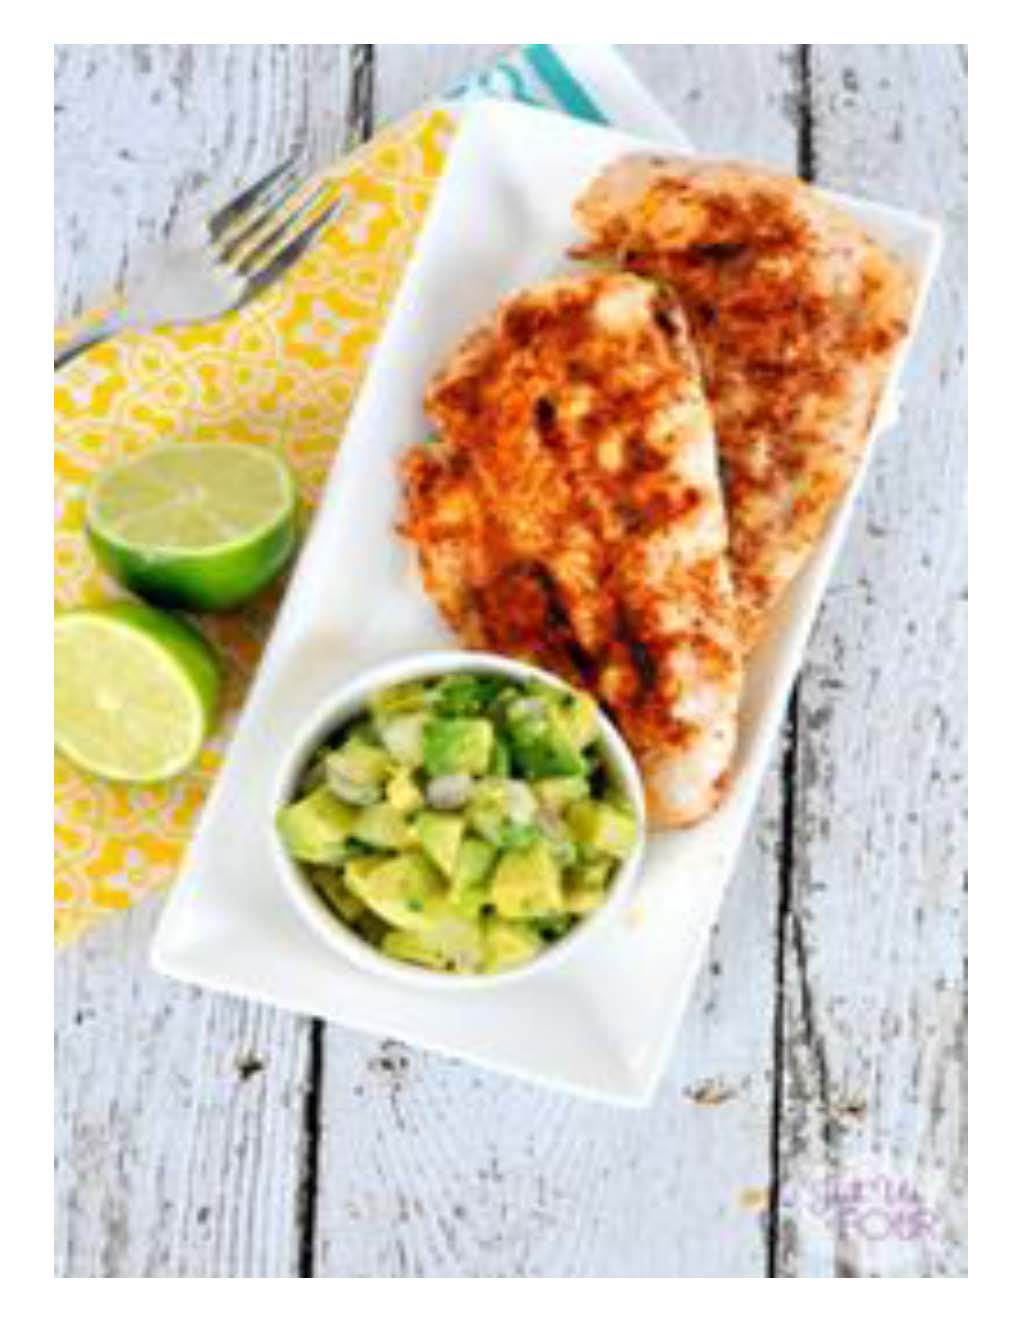 Chipotle Chicken with Avocado Salsa Photo